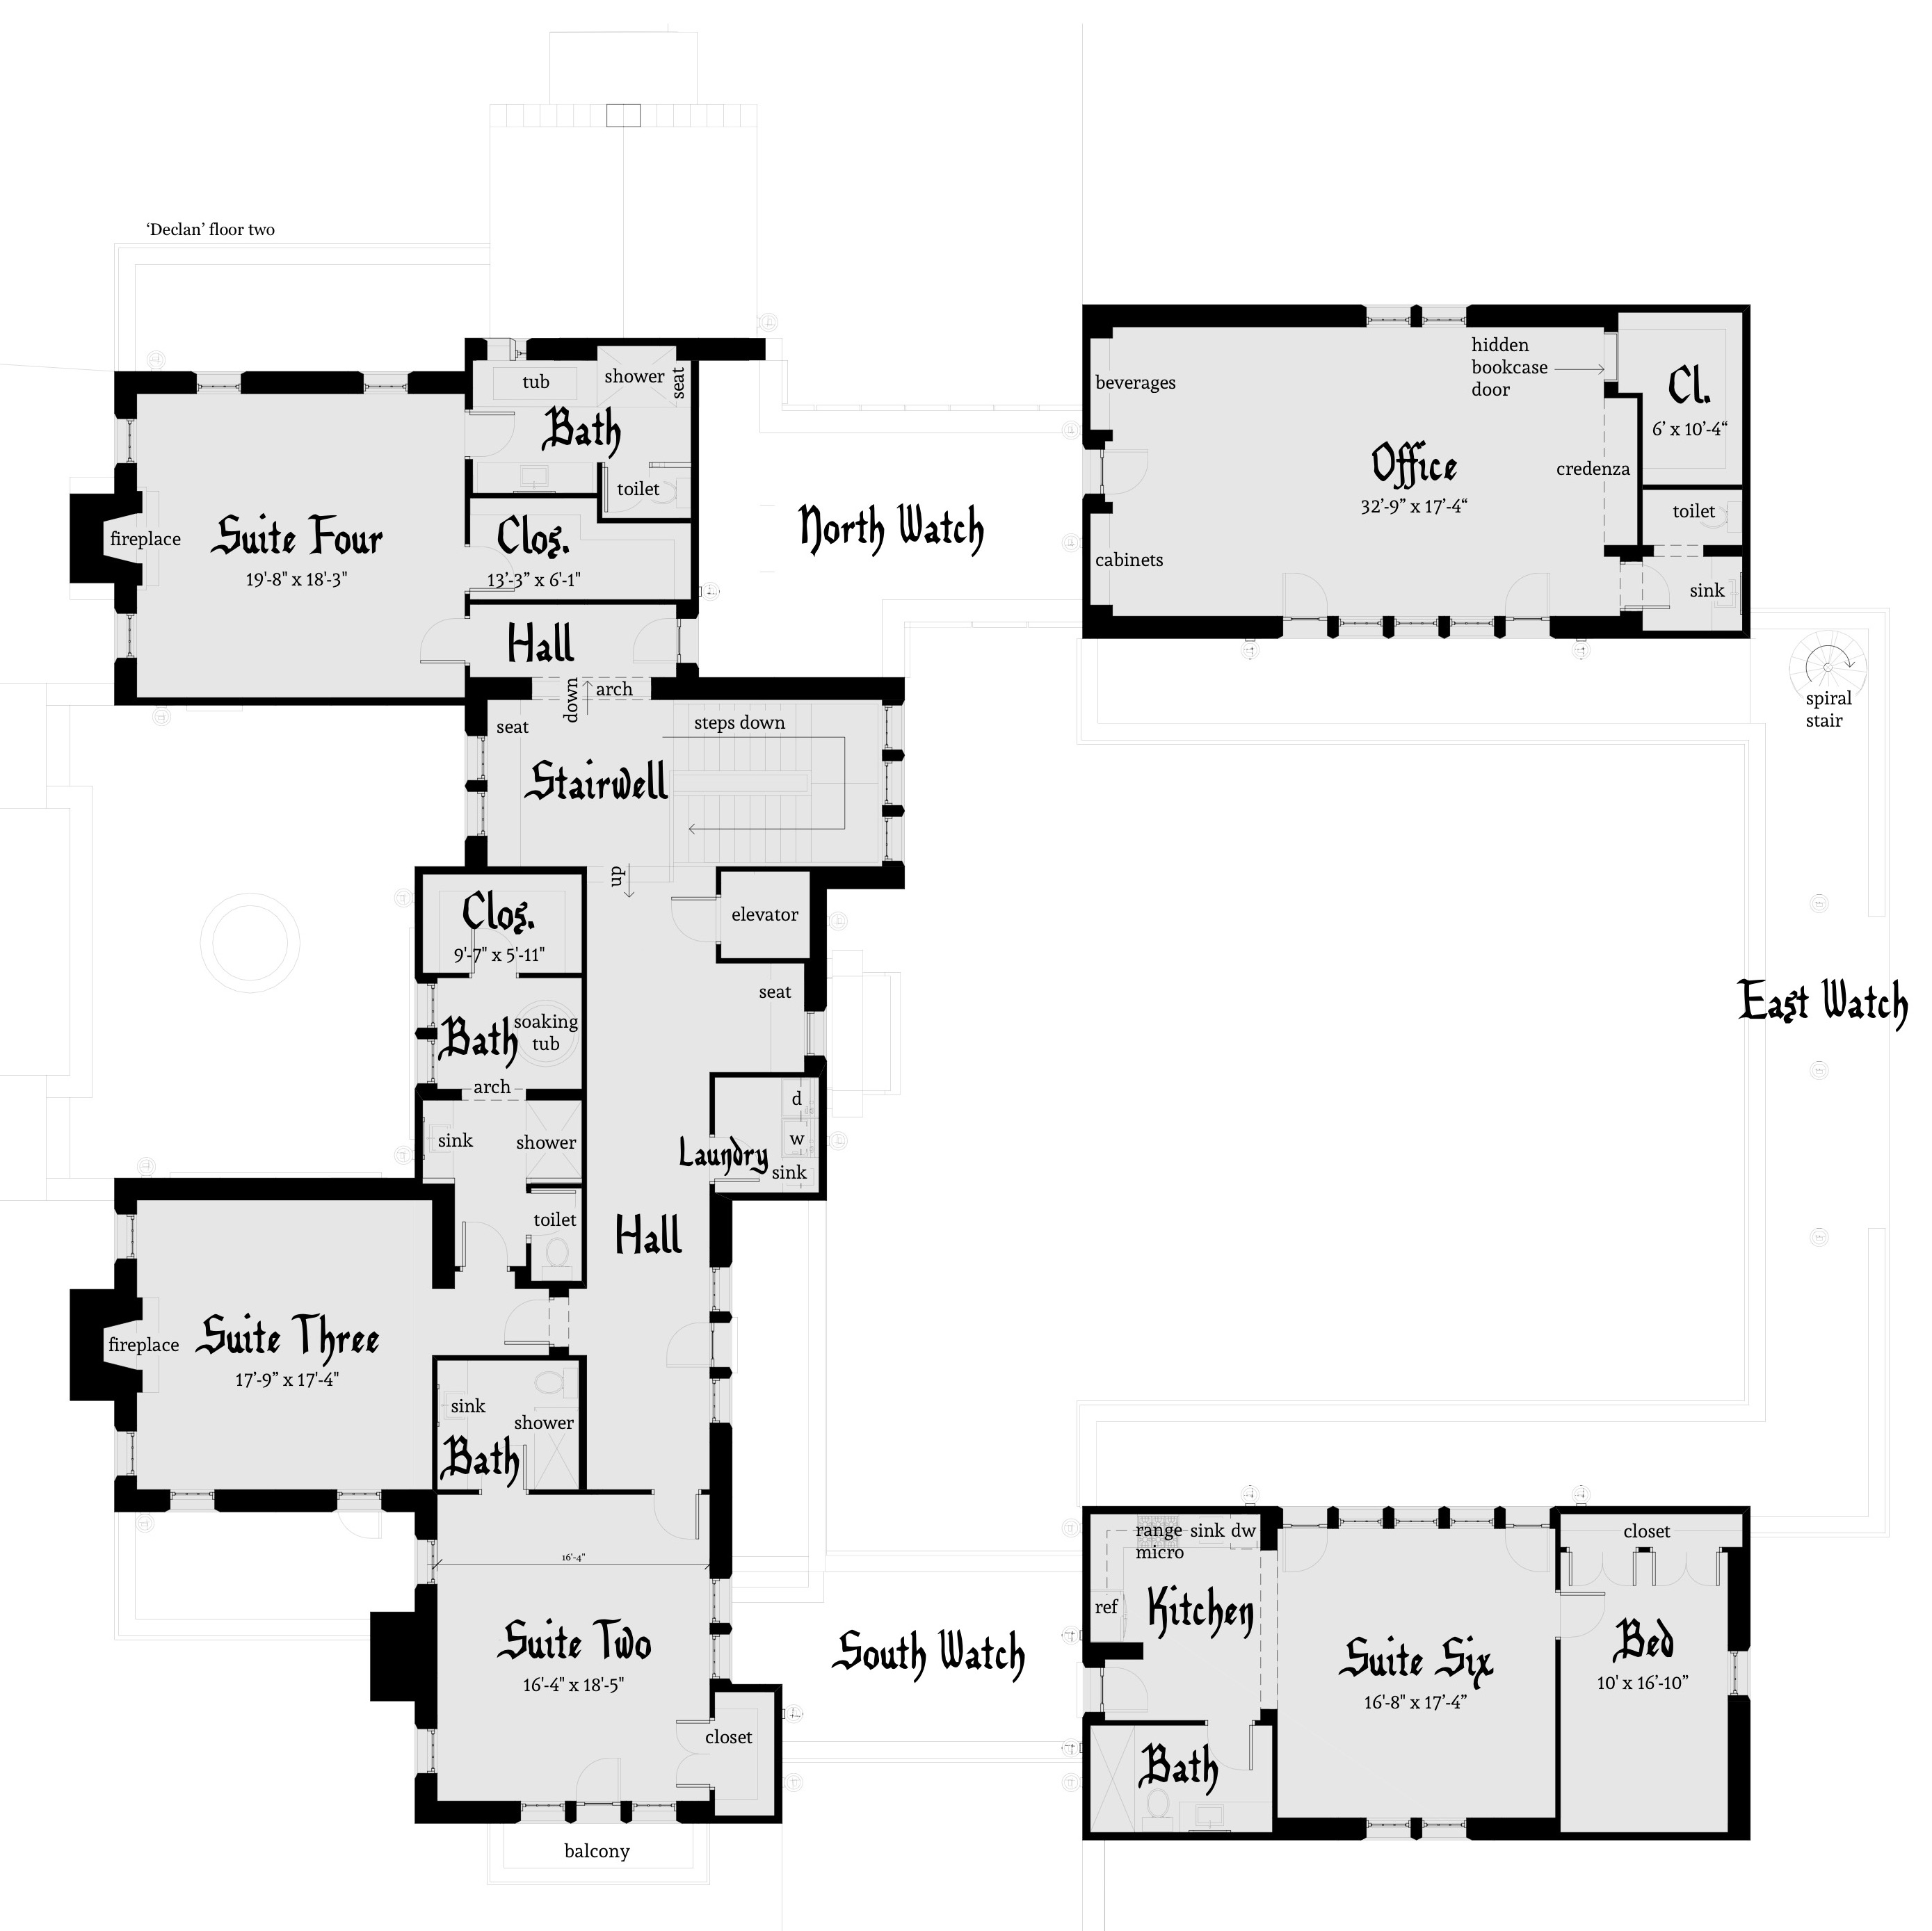 declan castle plan u2013 tyree house plans